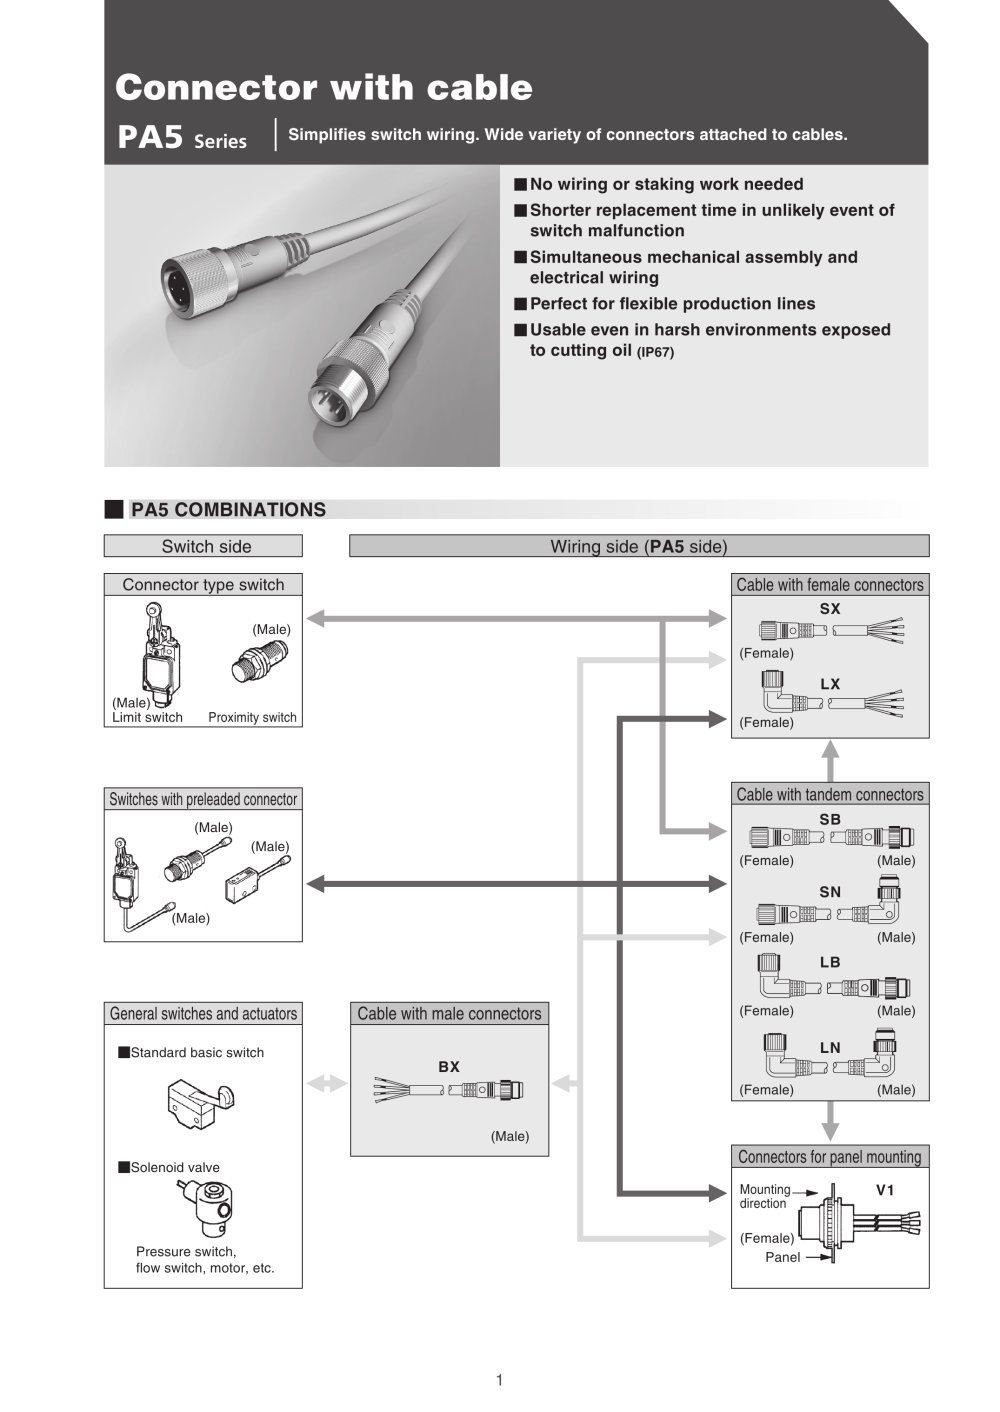 PA5 Series M12 Connector Cable - 1 / 8 Pages